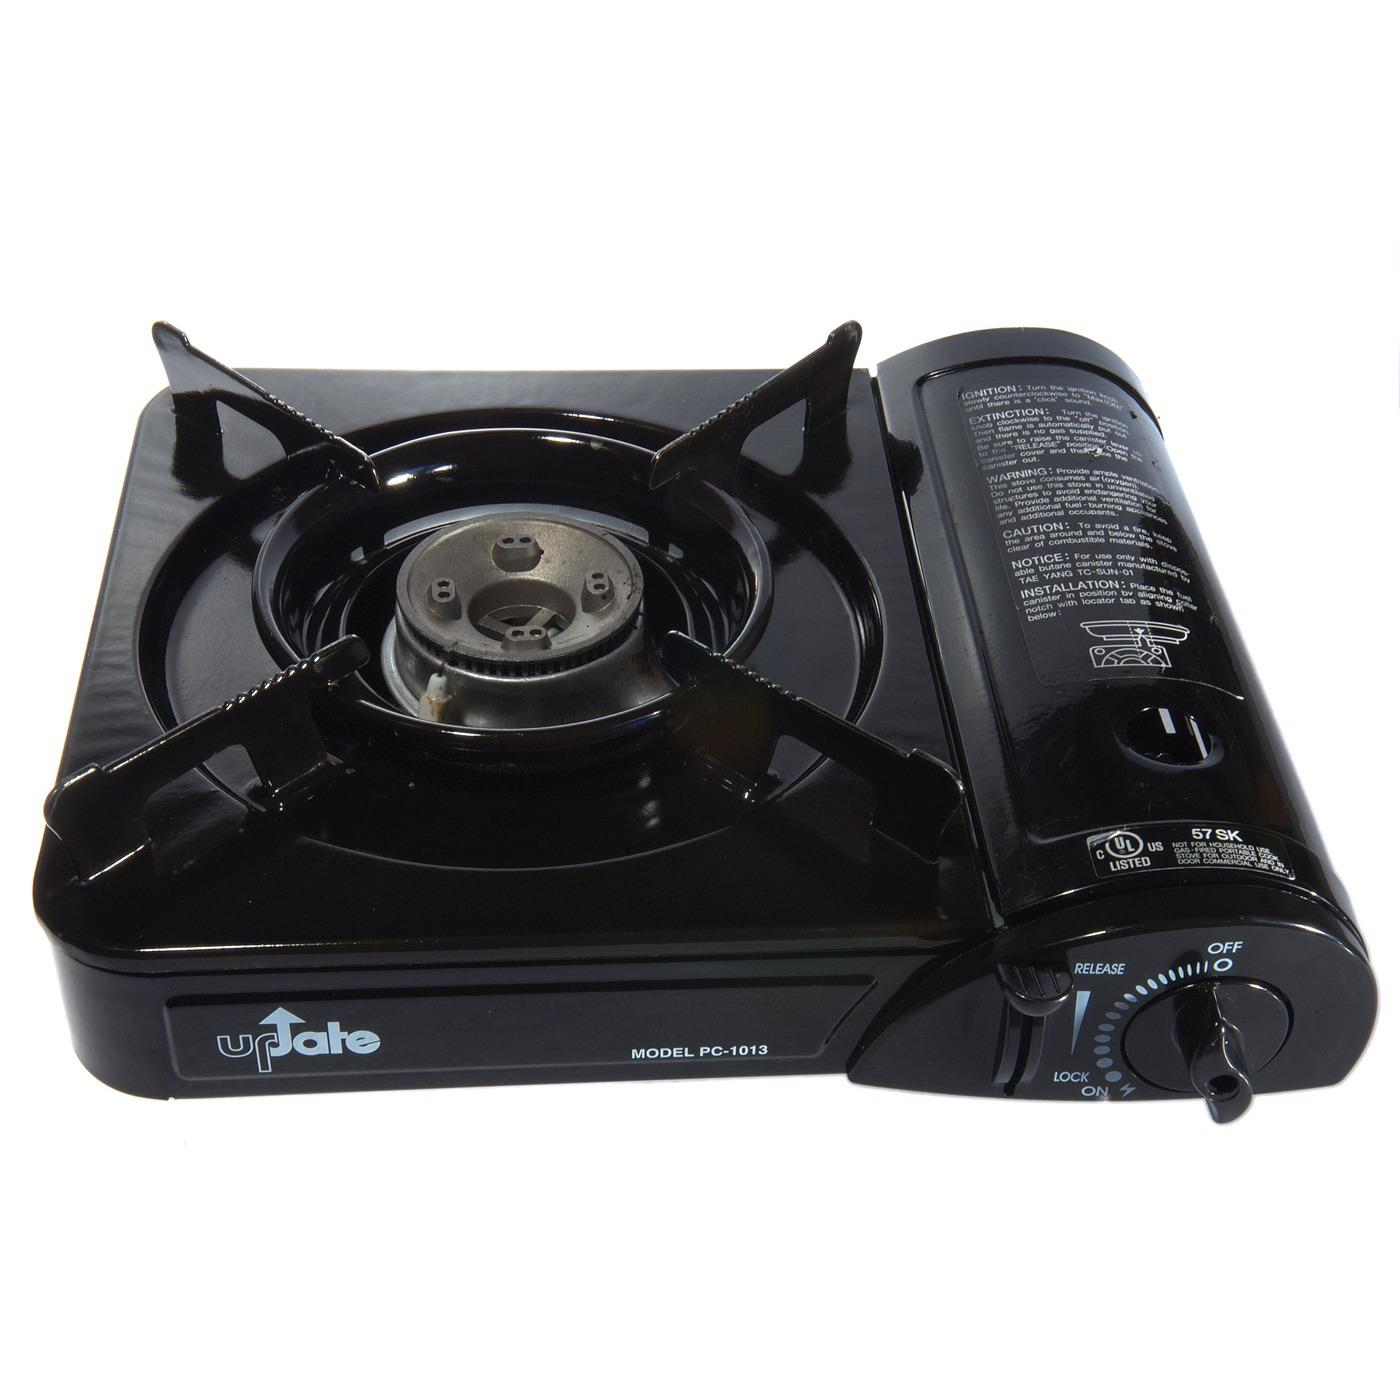 Cassette Feu - 1 Burner with Butane